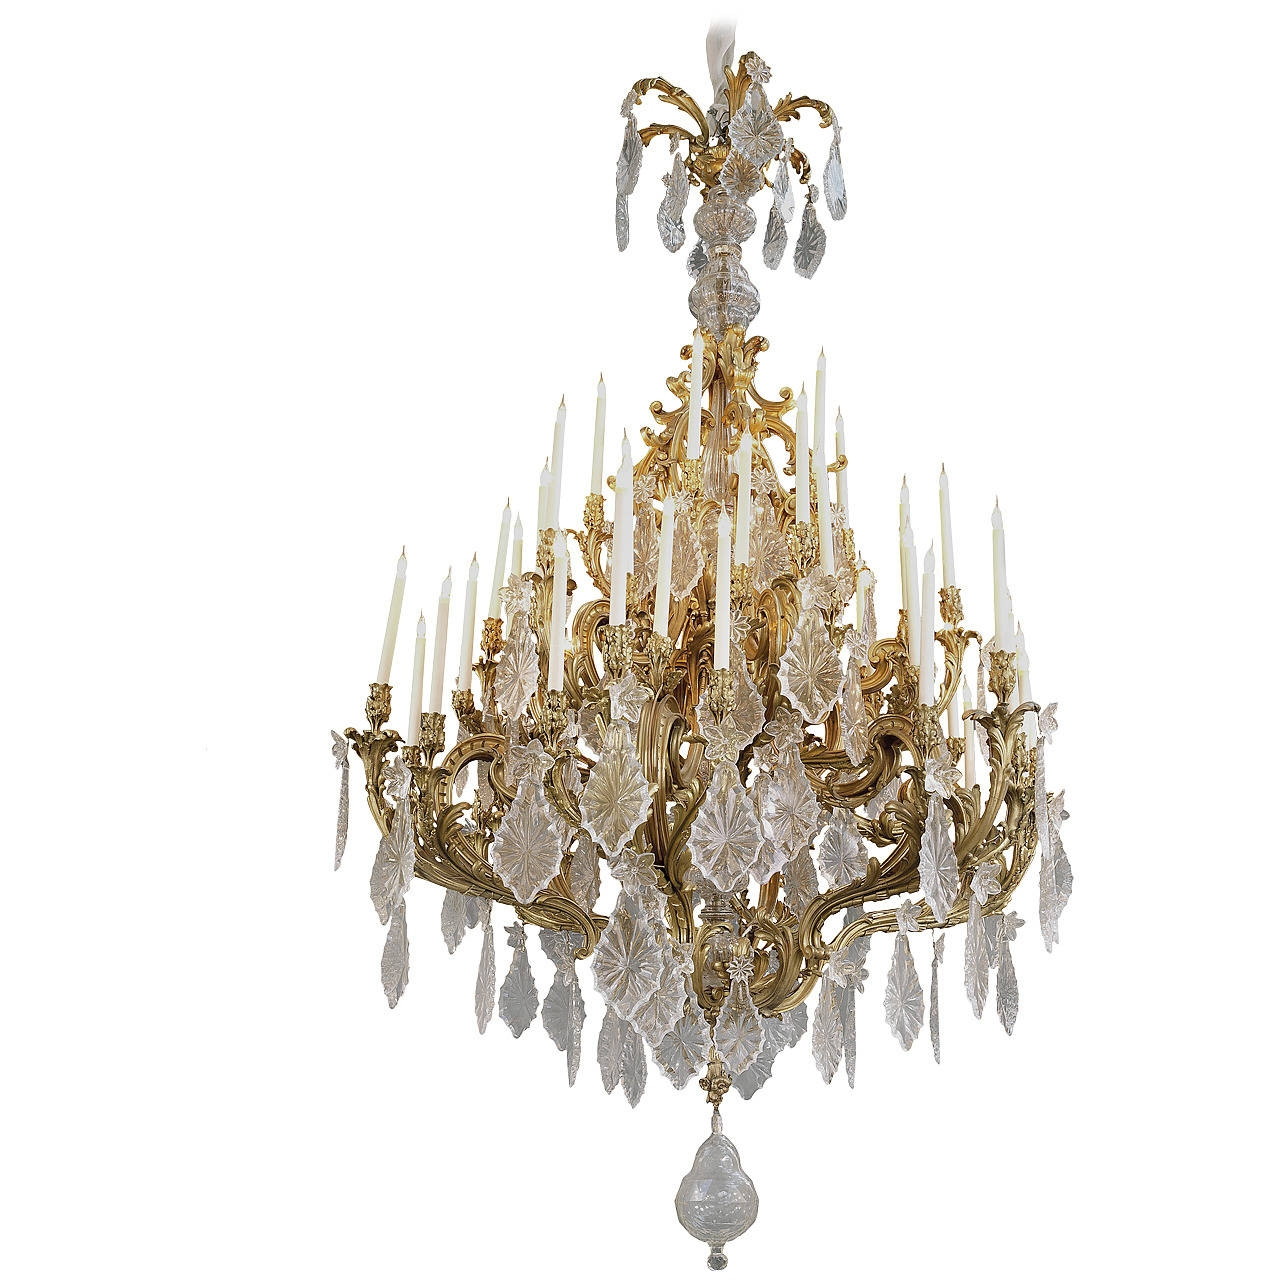 Top 10 Most Expensive Chandeliers In The World World Tops And In Expensive Chandeliers (Image 14 of 15)